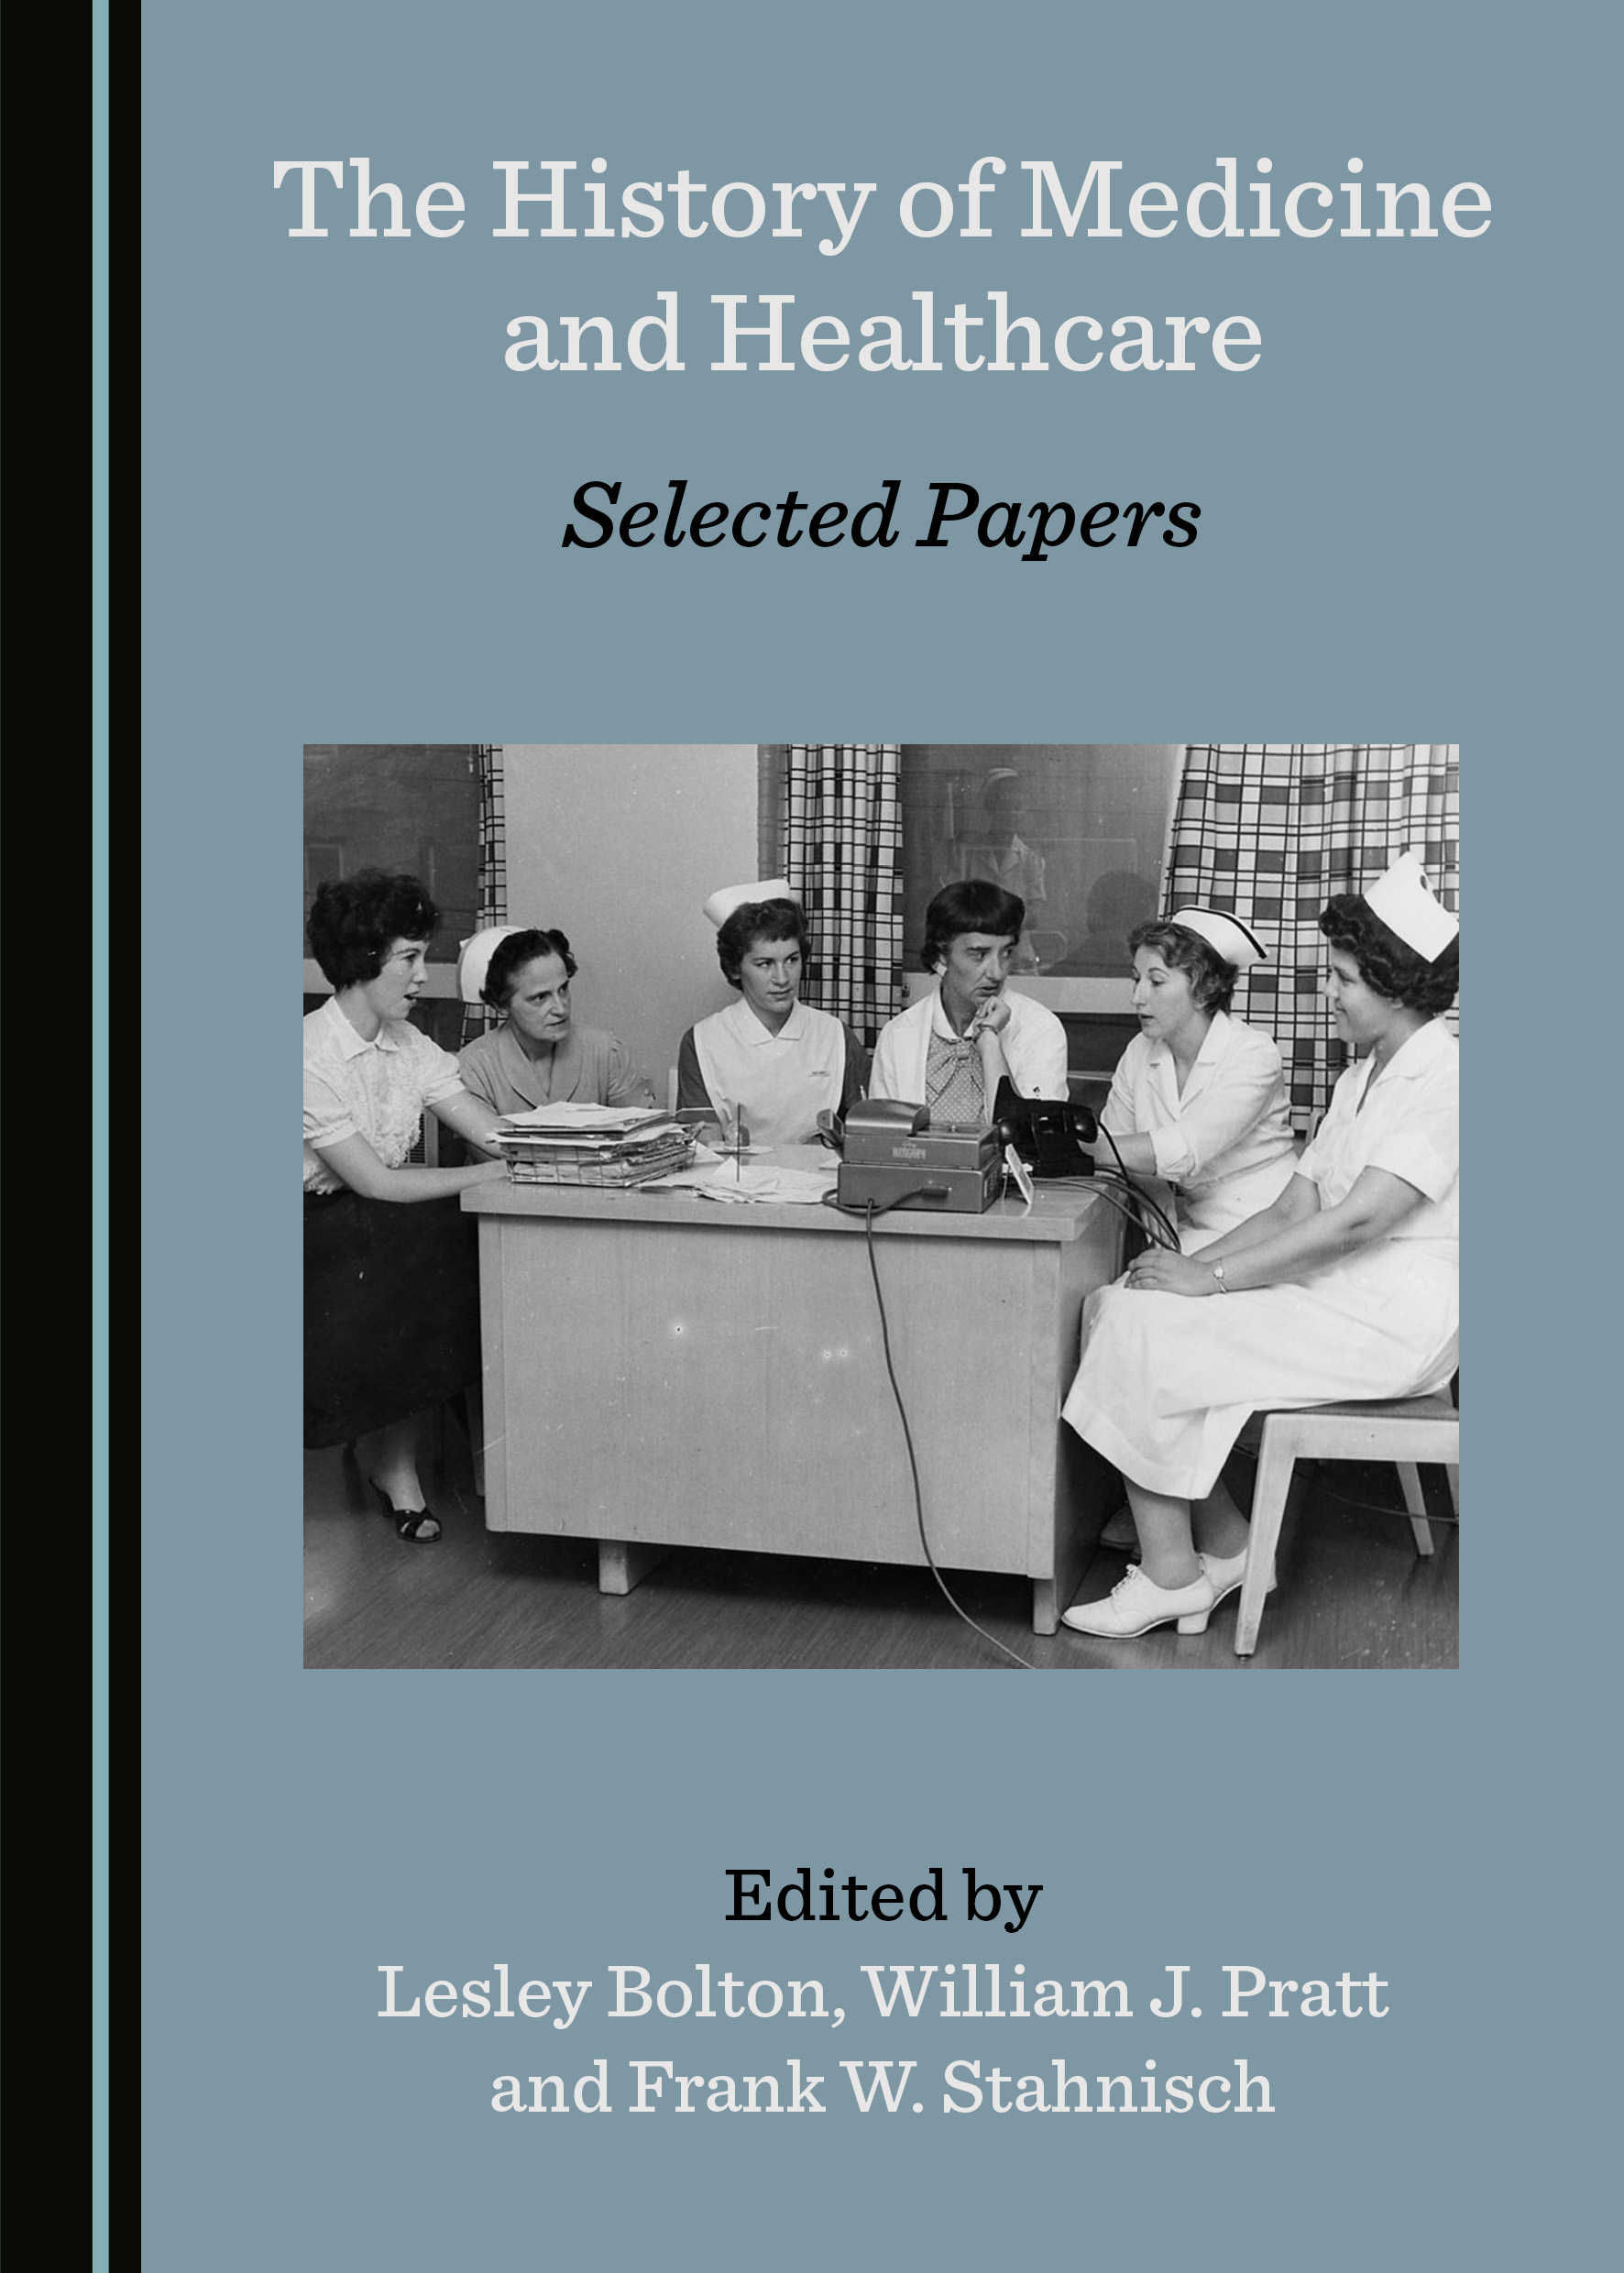 The History of Medicine and Healthcare: Selected Papers